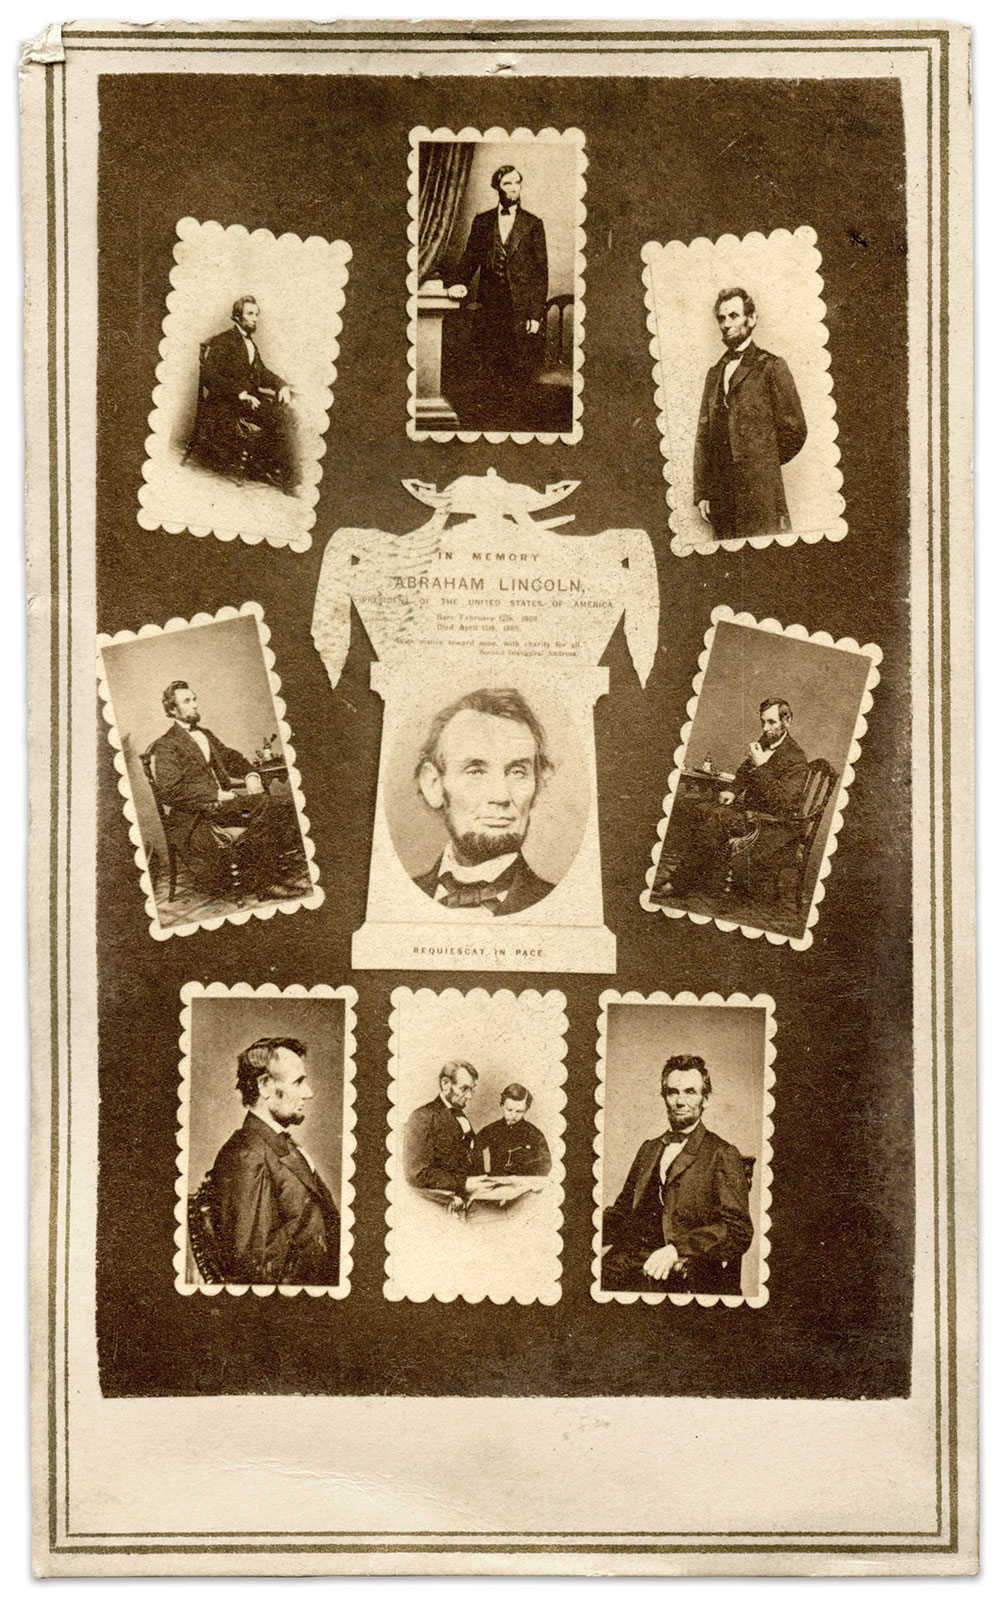 """THE FALLEN PRESIDENT: Nine views of President Lincoln taken by Brady's Gallery in Washington, D.C., pay tribute to the late leader. The centerpiece image includes a quote from his Second Inaugural Address: """"With malice toward none, with charity for all."""""""